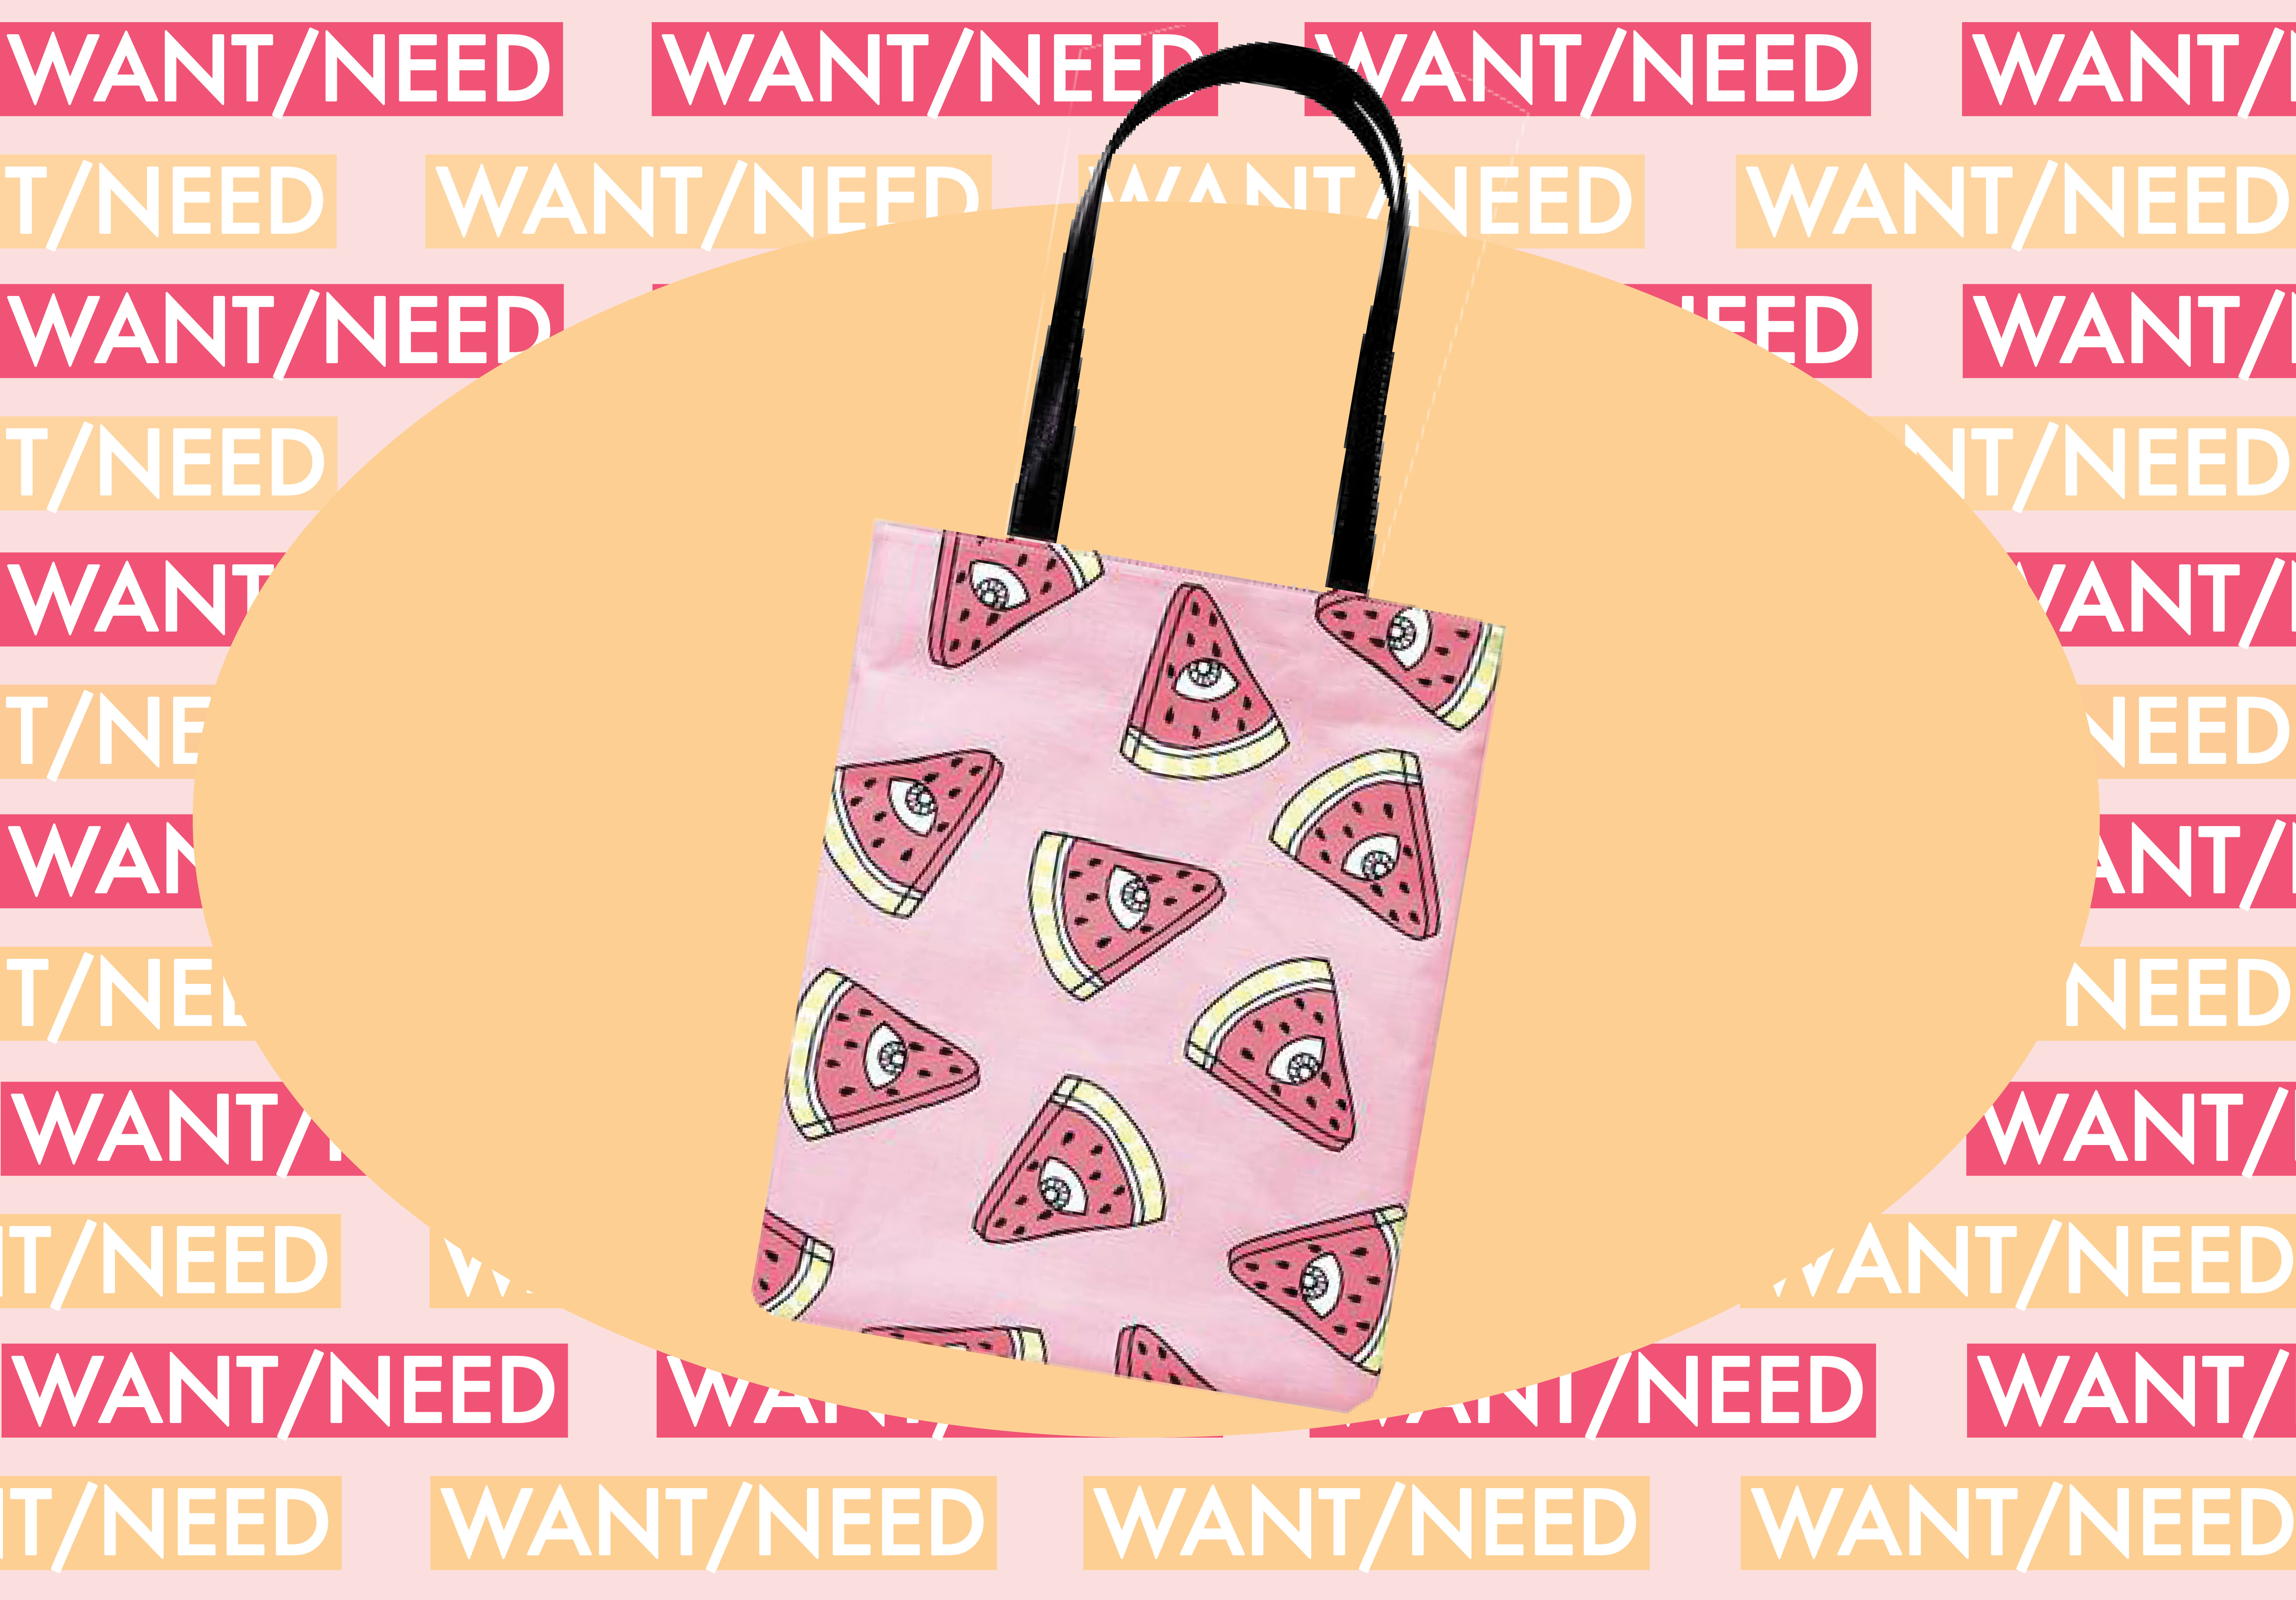 WANT/NEED: The trippy watermelon tote bag of your dreams, plus more stuff you actually want to buy